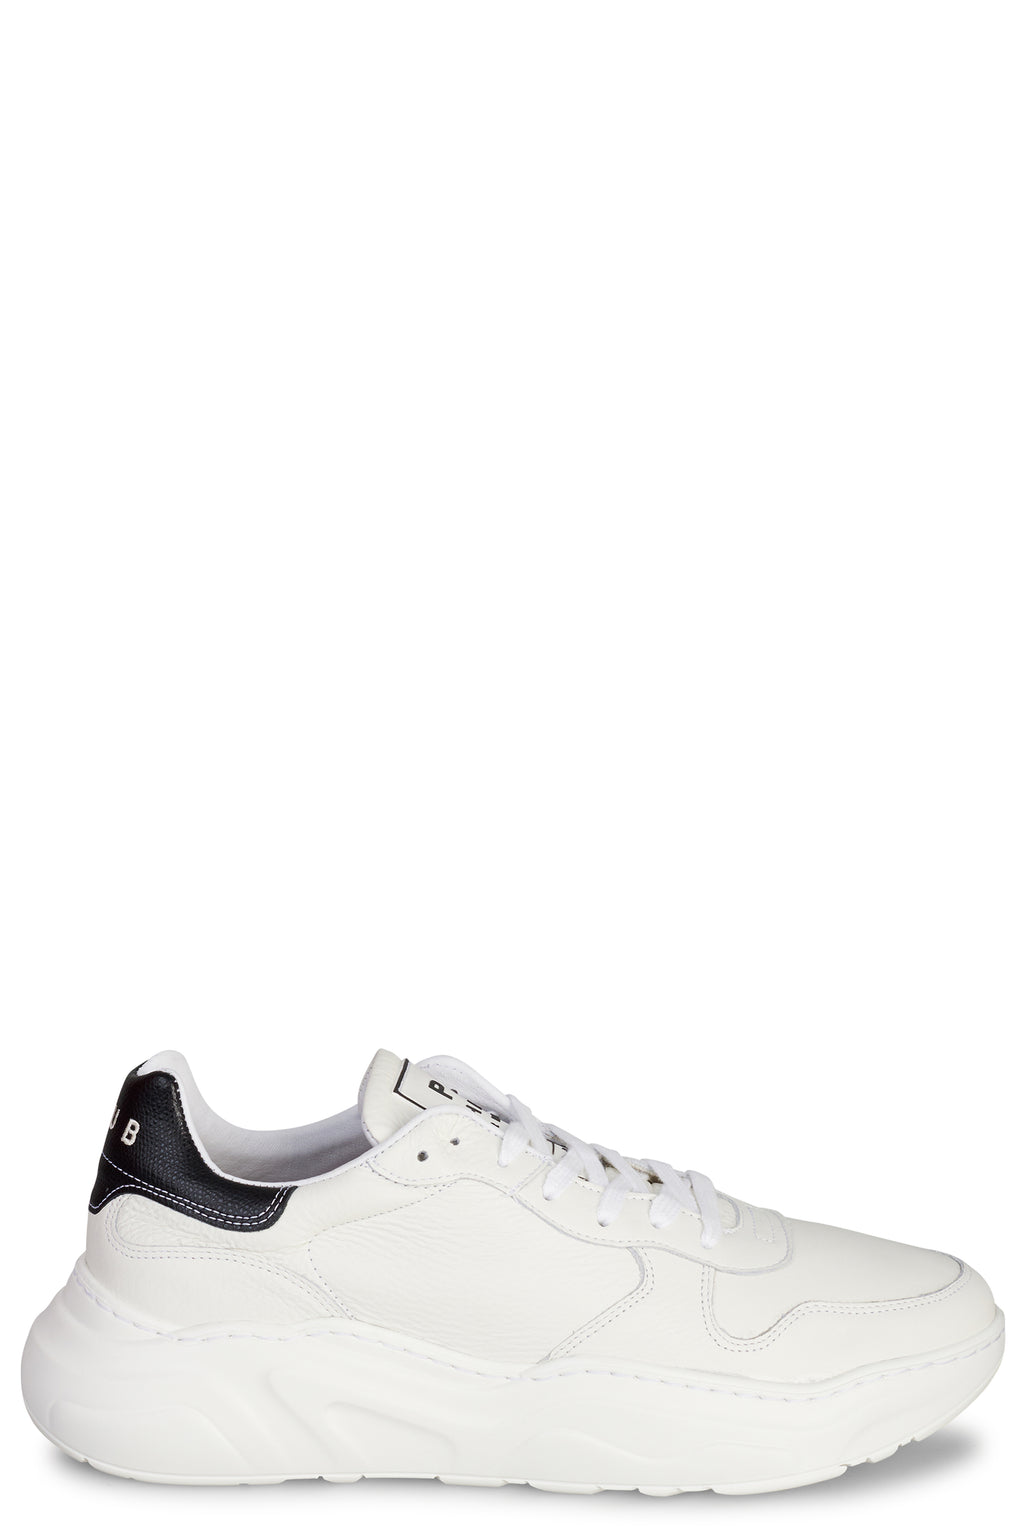 <b>PC403 </b><br>Sneakers<br>modern<br>